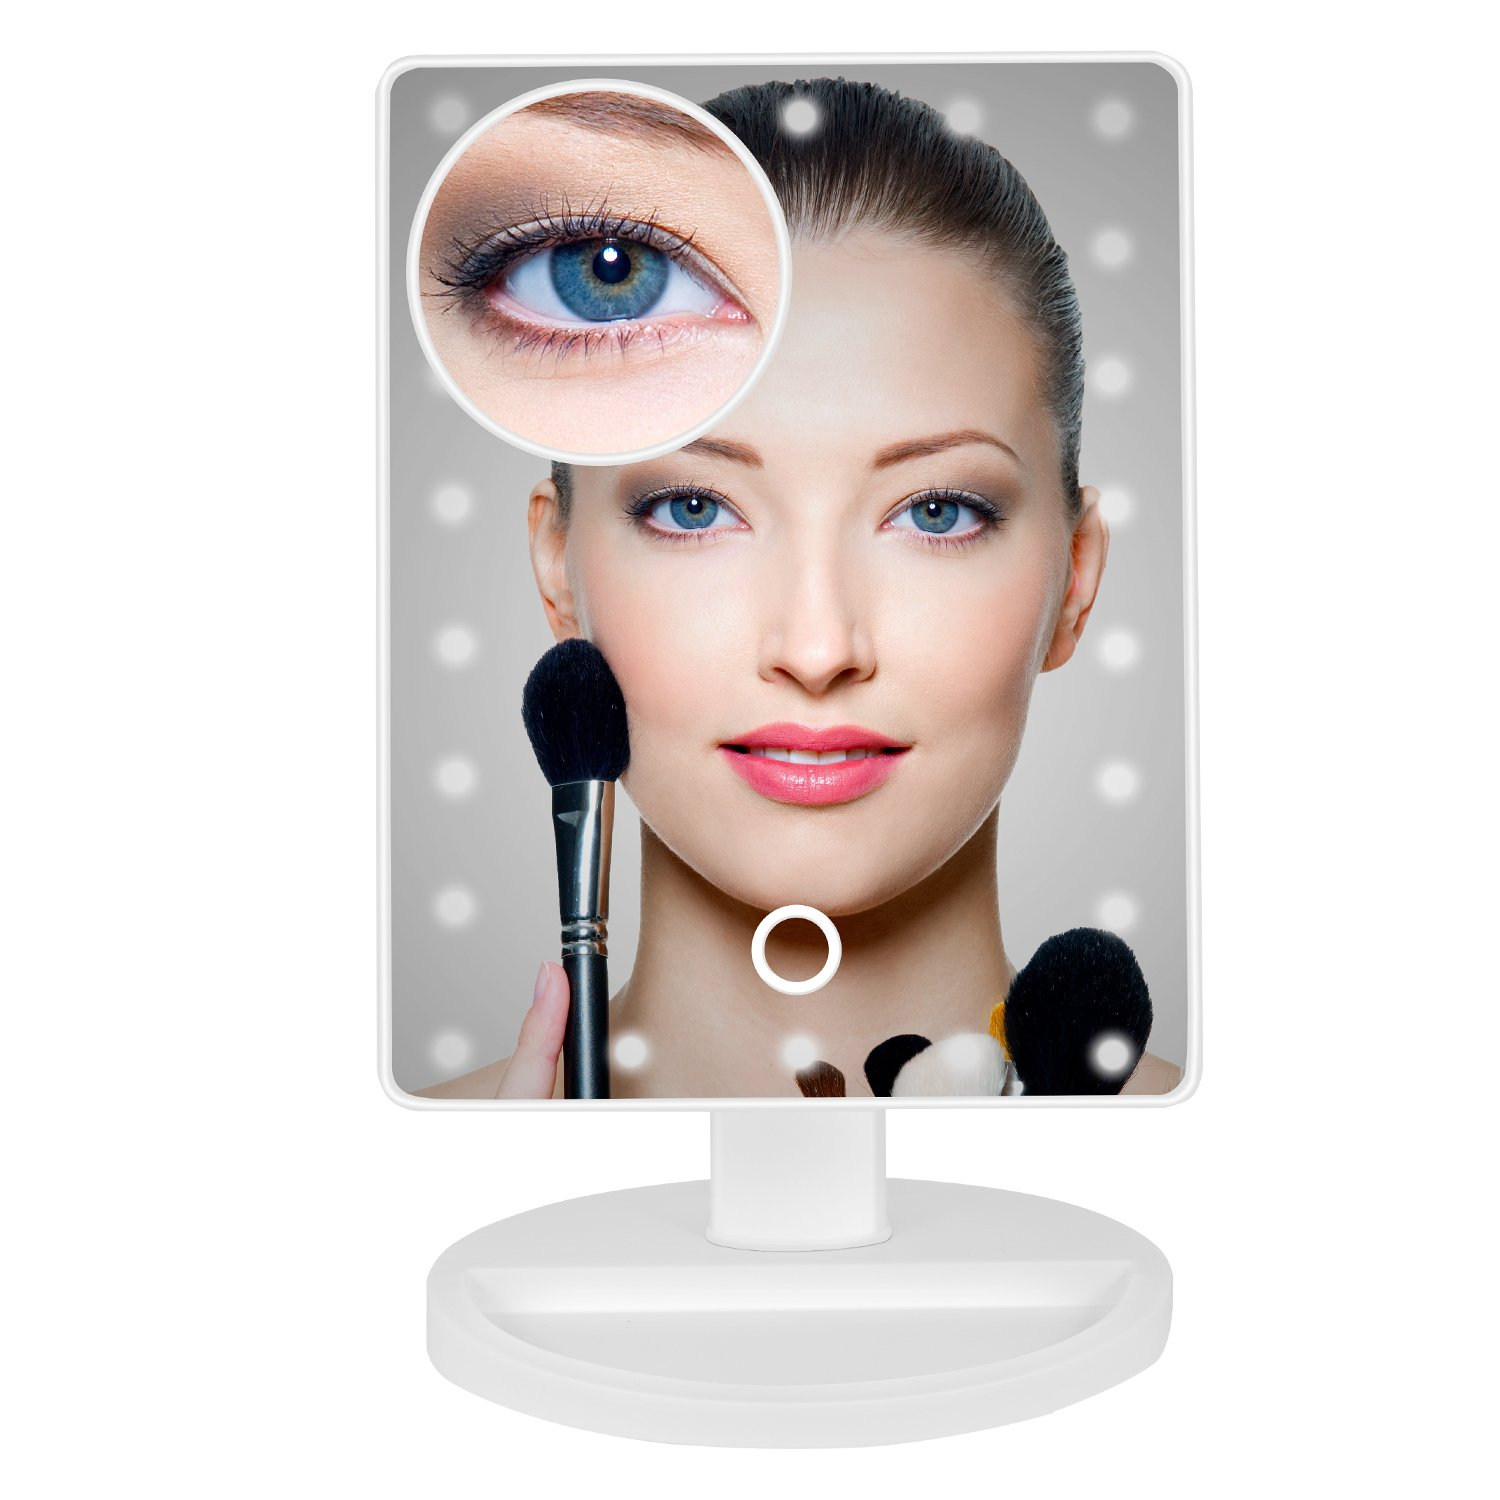 Bew 22LED lights & Touch Screen Dimming Lighted Make up Mirror, Illuminated Magnifying Mirror for Women